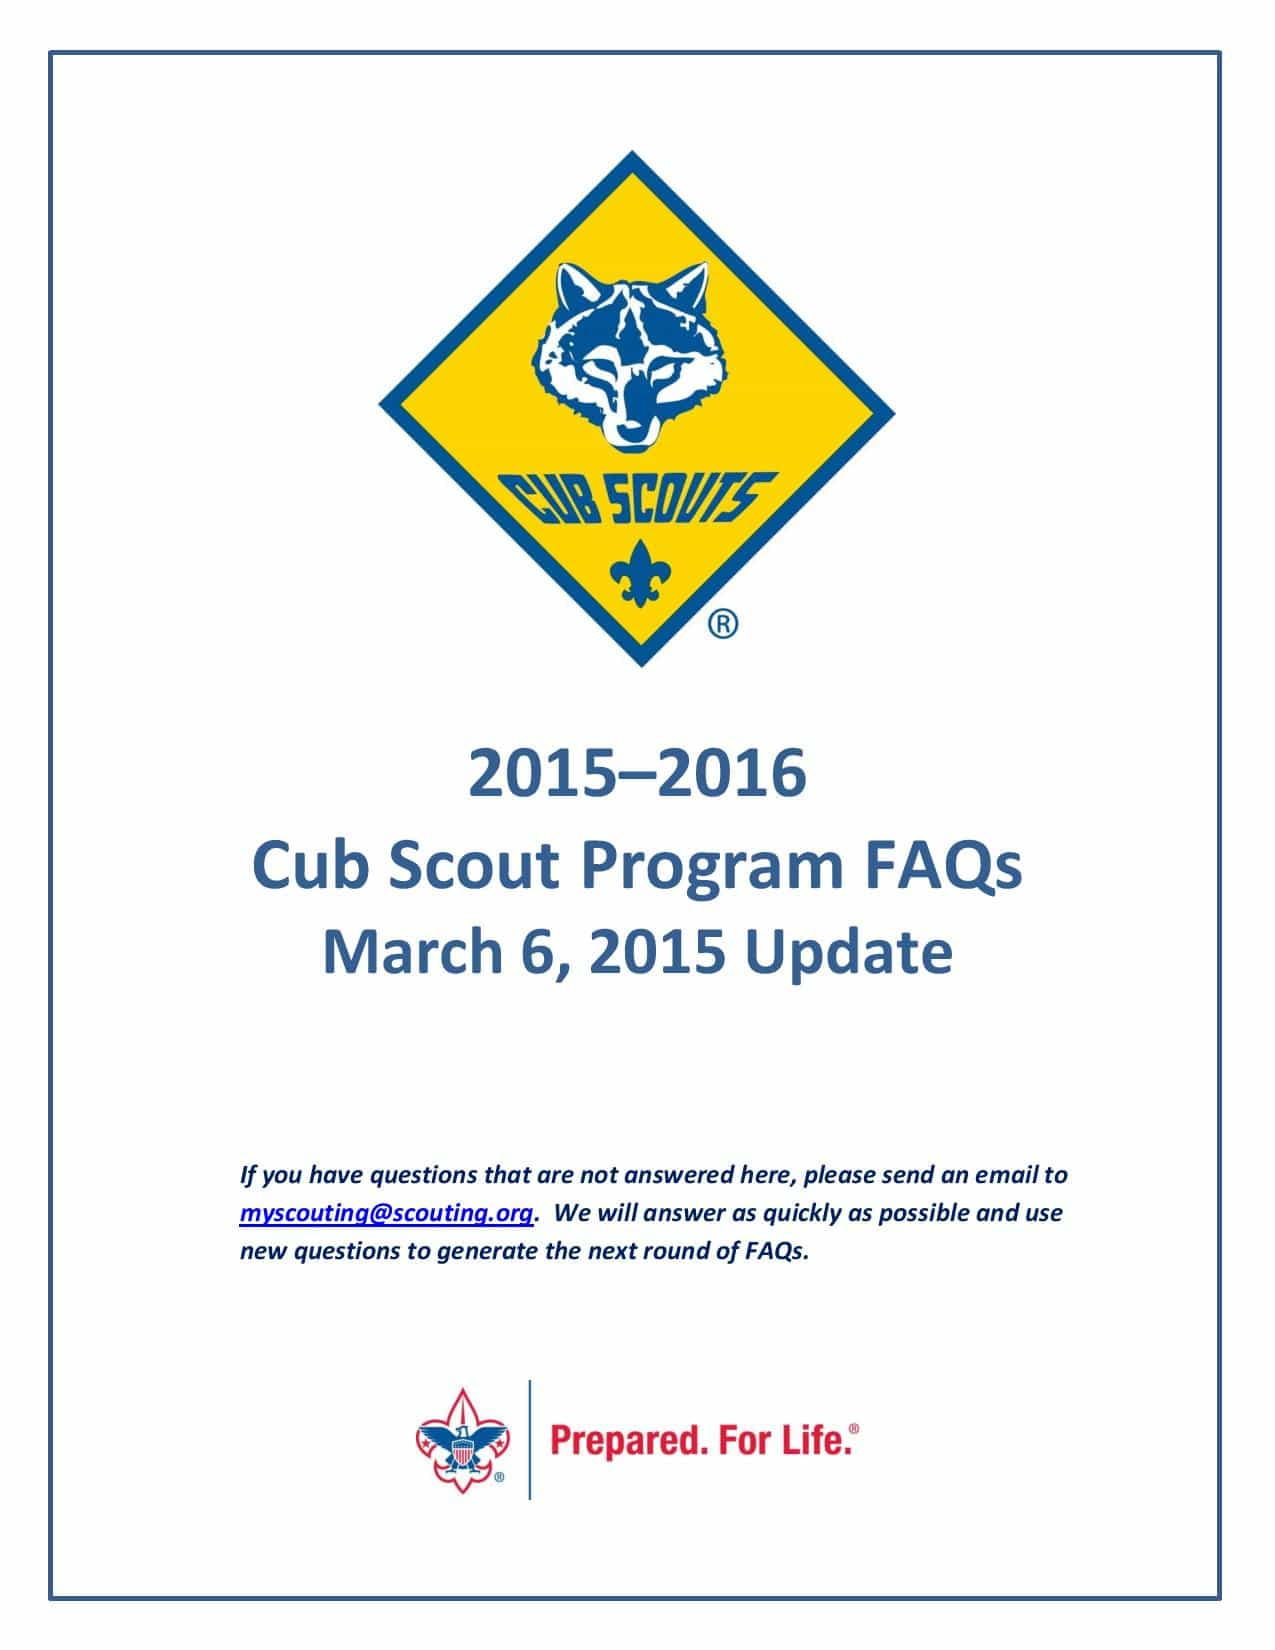 Food Safety Practices For Outdoor Cooking Cub Scout Ideas